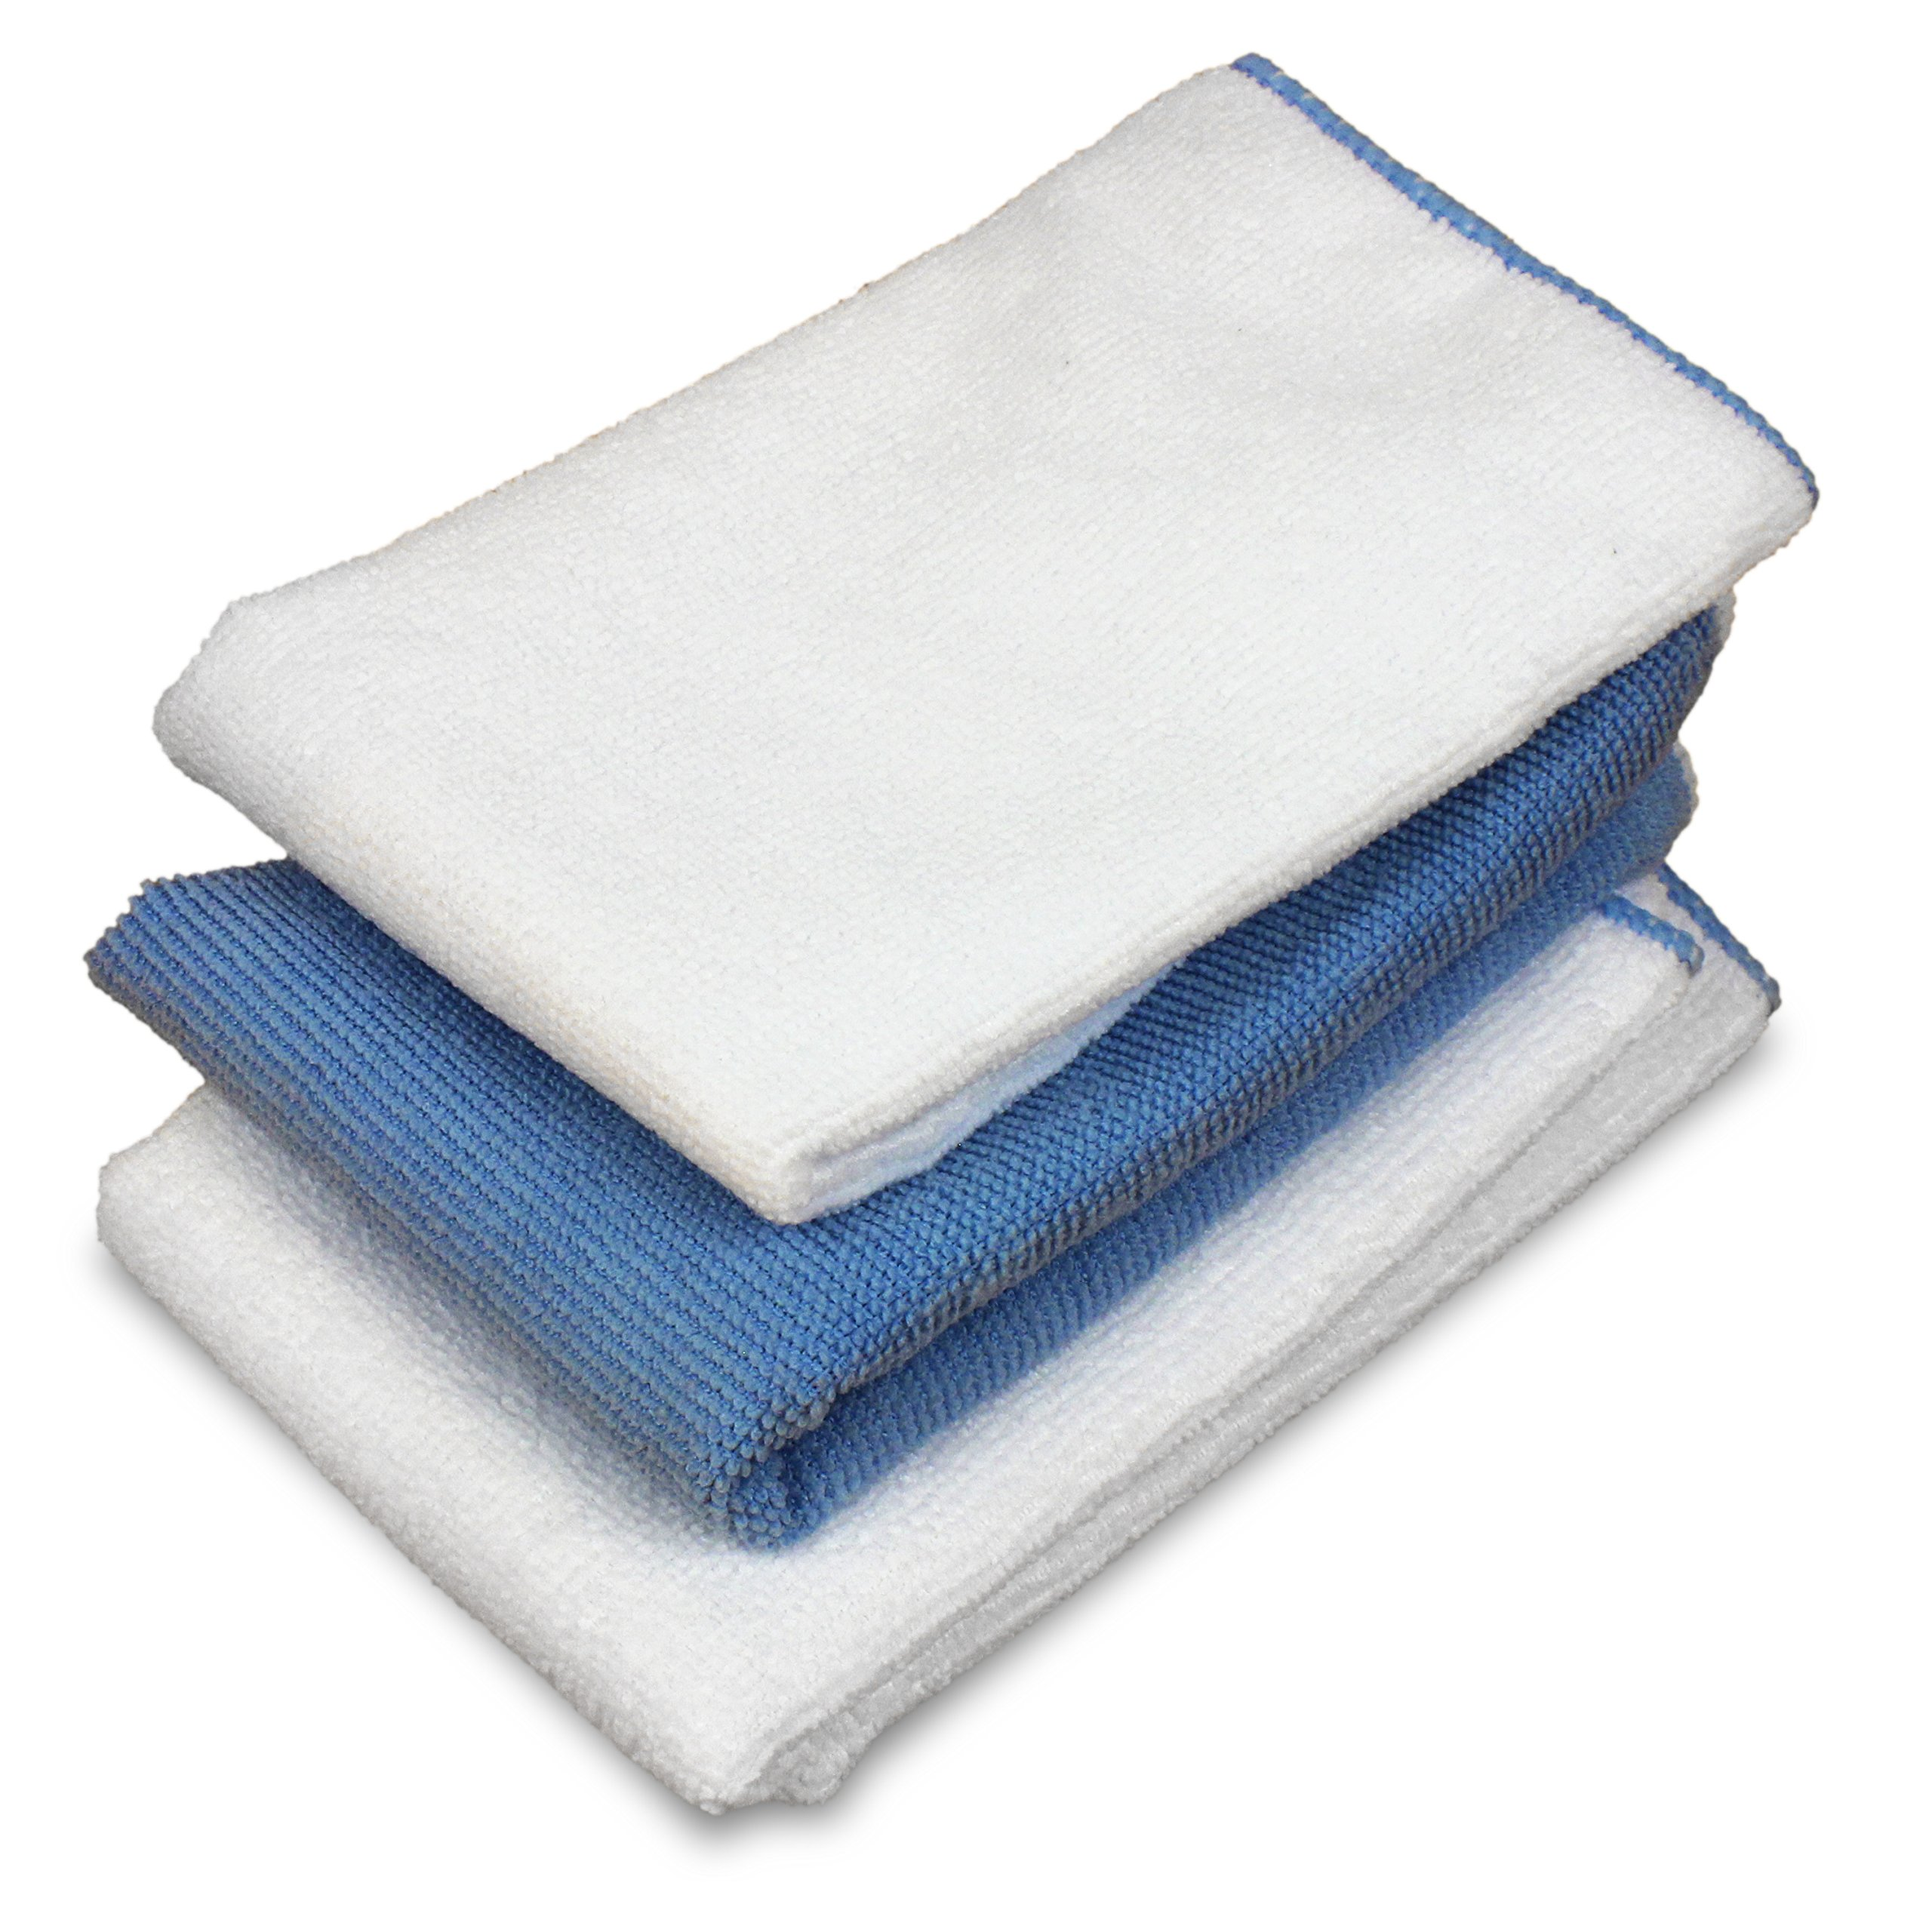 Home Solutions Microfiber Cloth Cleaning Set -3x Mix Pack White & Blue Microfiber